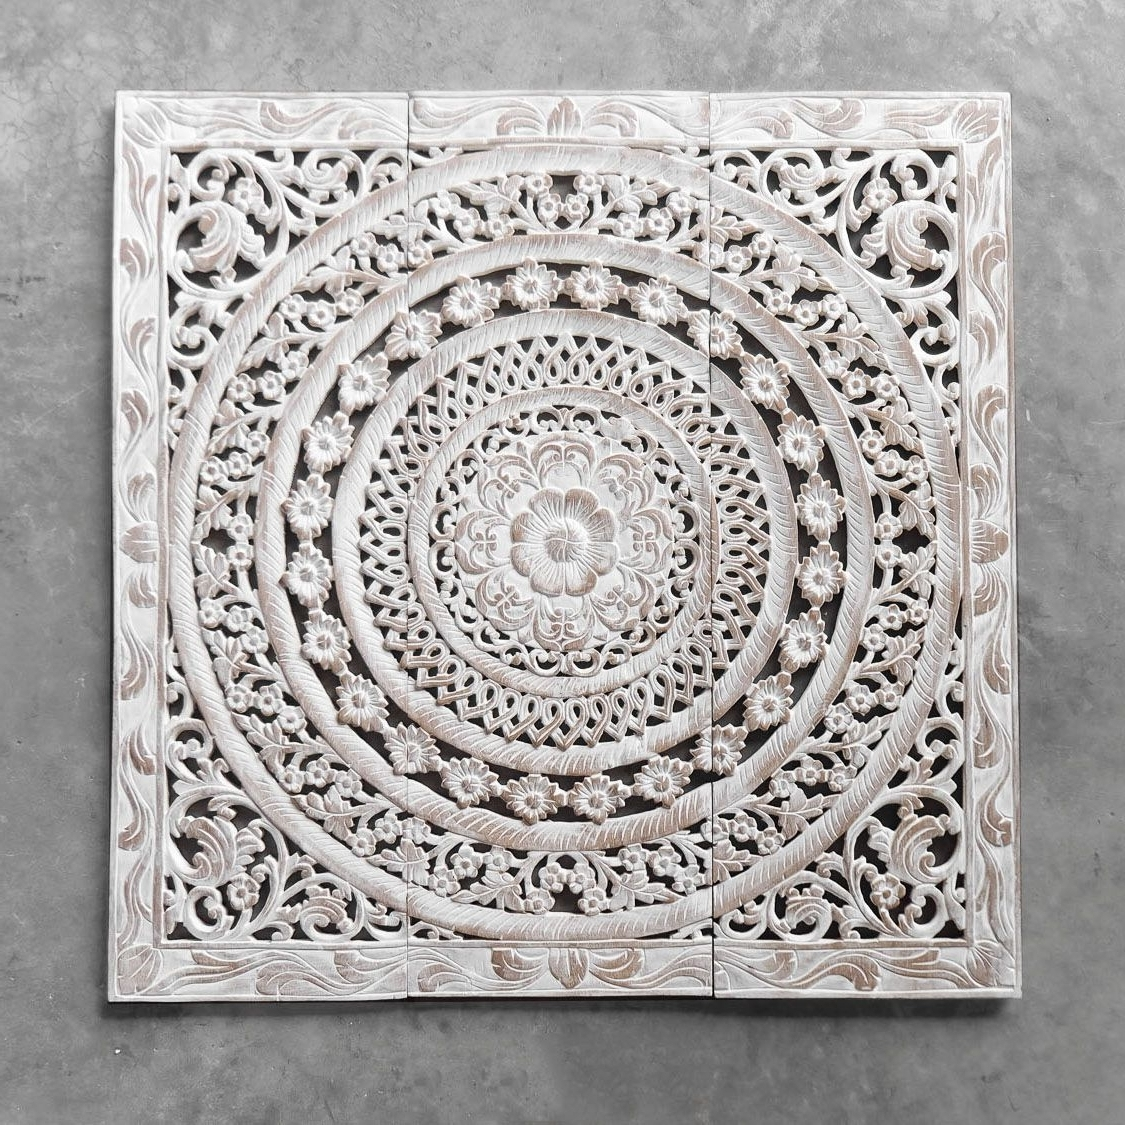 Hand Carved Wood Wall Decor Moroccan Decent Wood Carving Wall Art Within 2018 Carved Wood Wall Art (View 8 of 15)